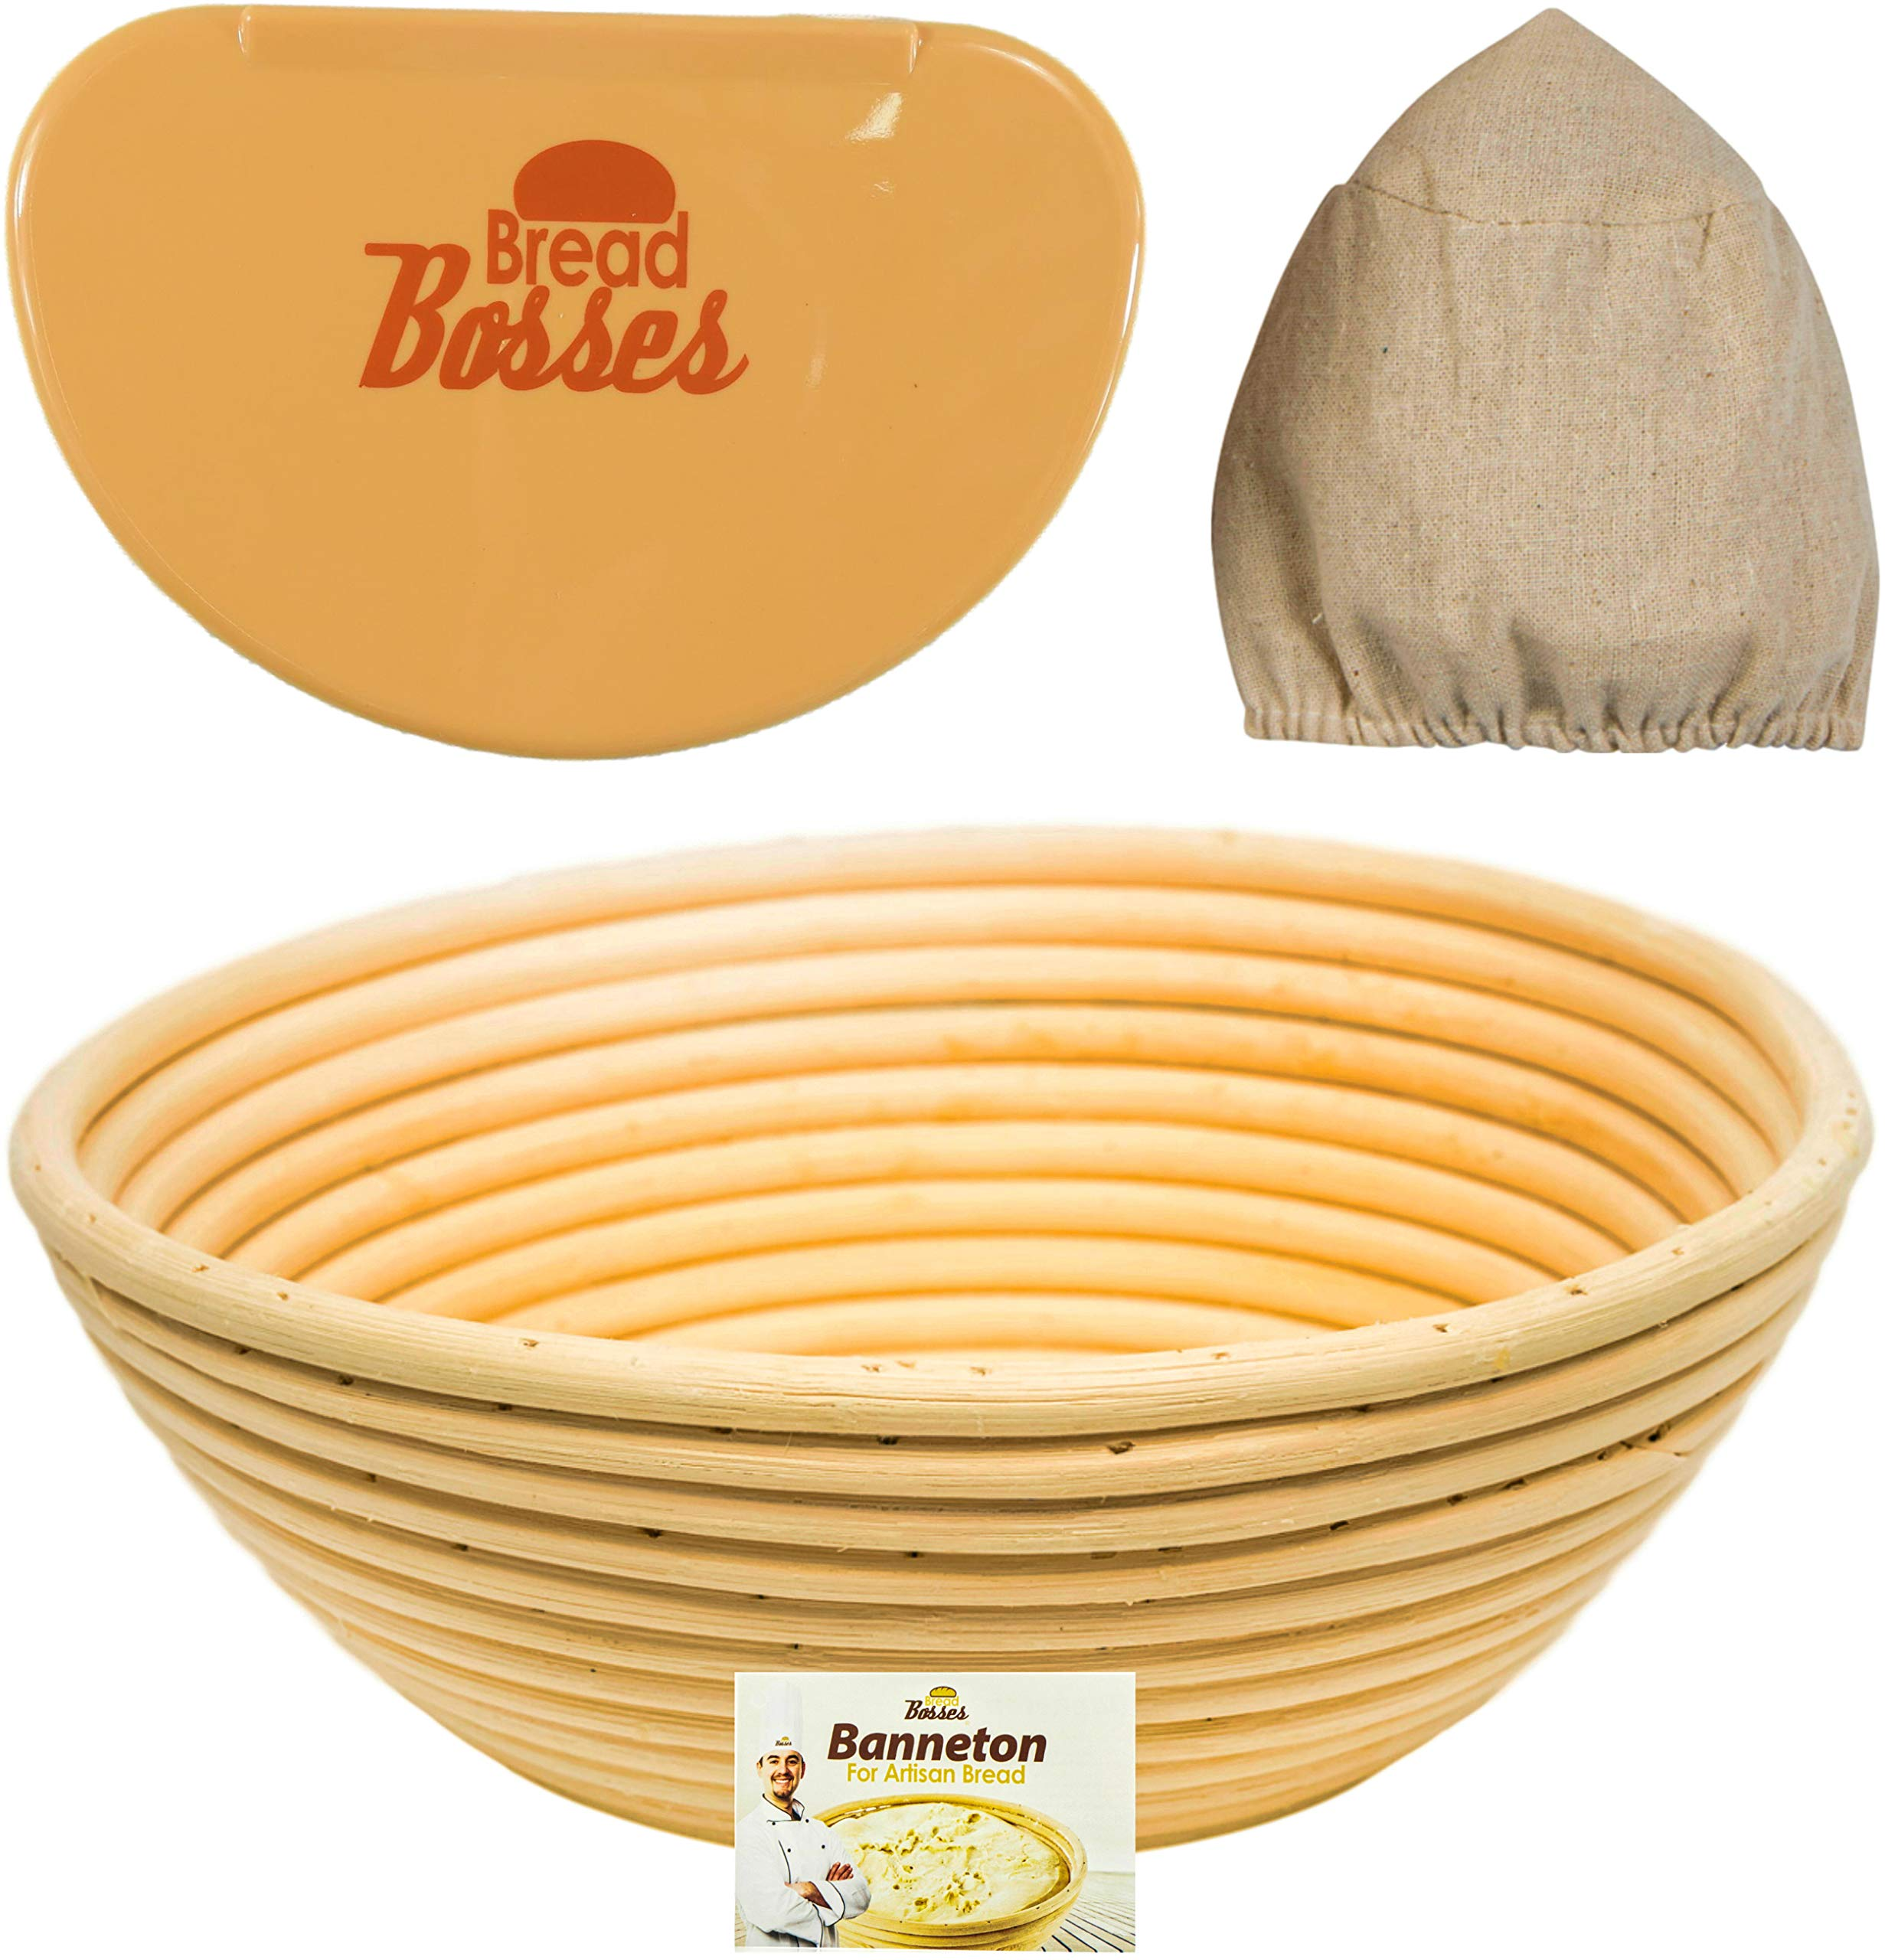 9 Inch Banneton Bread Proofing Basket - Sourdough Proving Baskets w/Bowl Scraper, Brotform Cloth Liner, Starter Recipe for Baking - Making Round Dough w/Rising Bannetons Banetton Benneton Proof Set